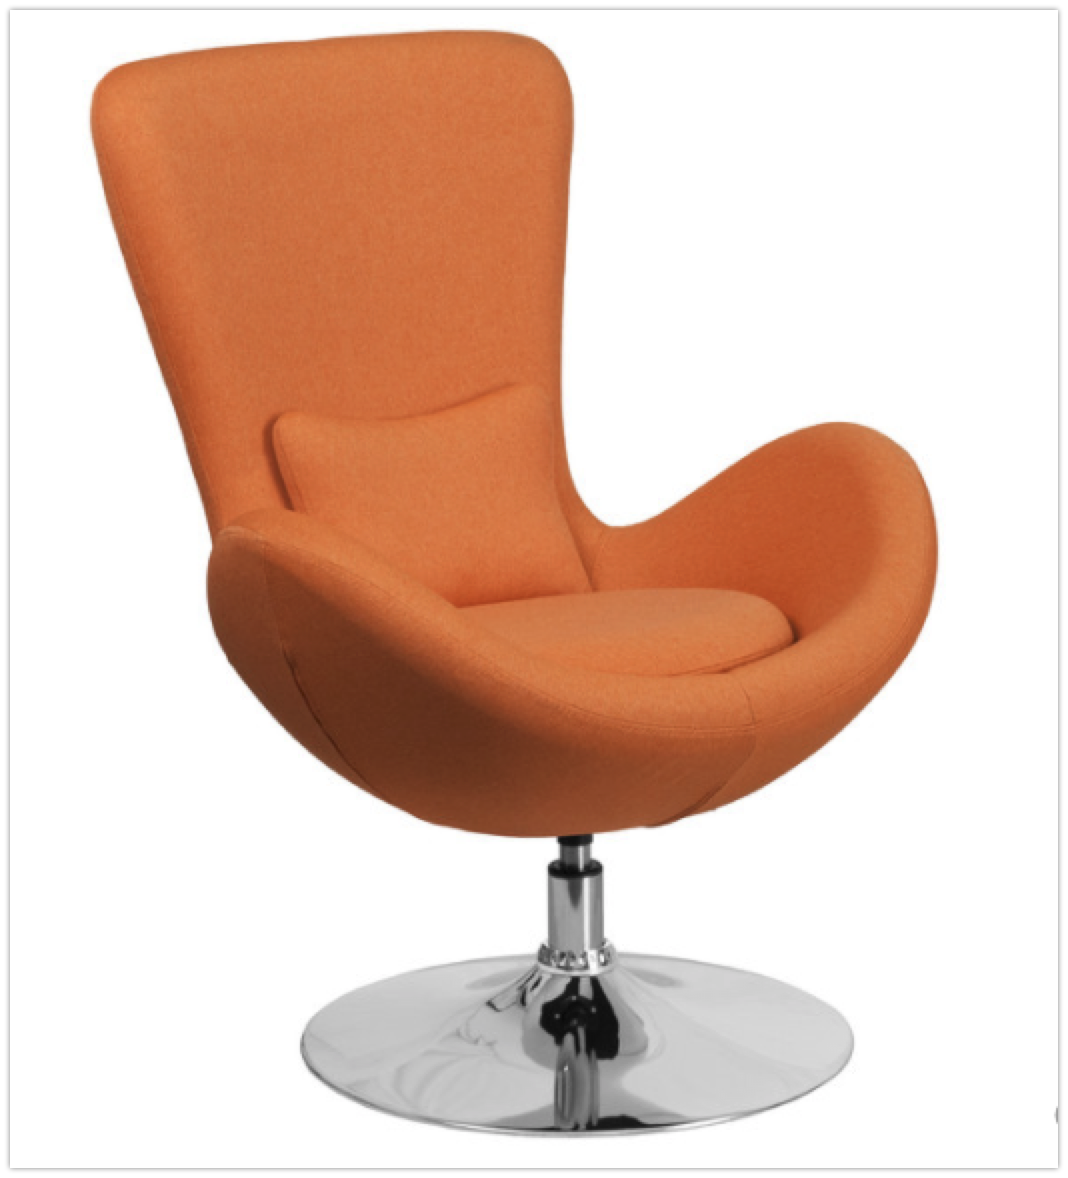 Terrific Top 7 Orange Lounge Swivel Chairs In 2019 Lamtechconsult Wood Chair Design Ideas Lamtechconsultcom